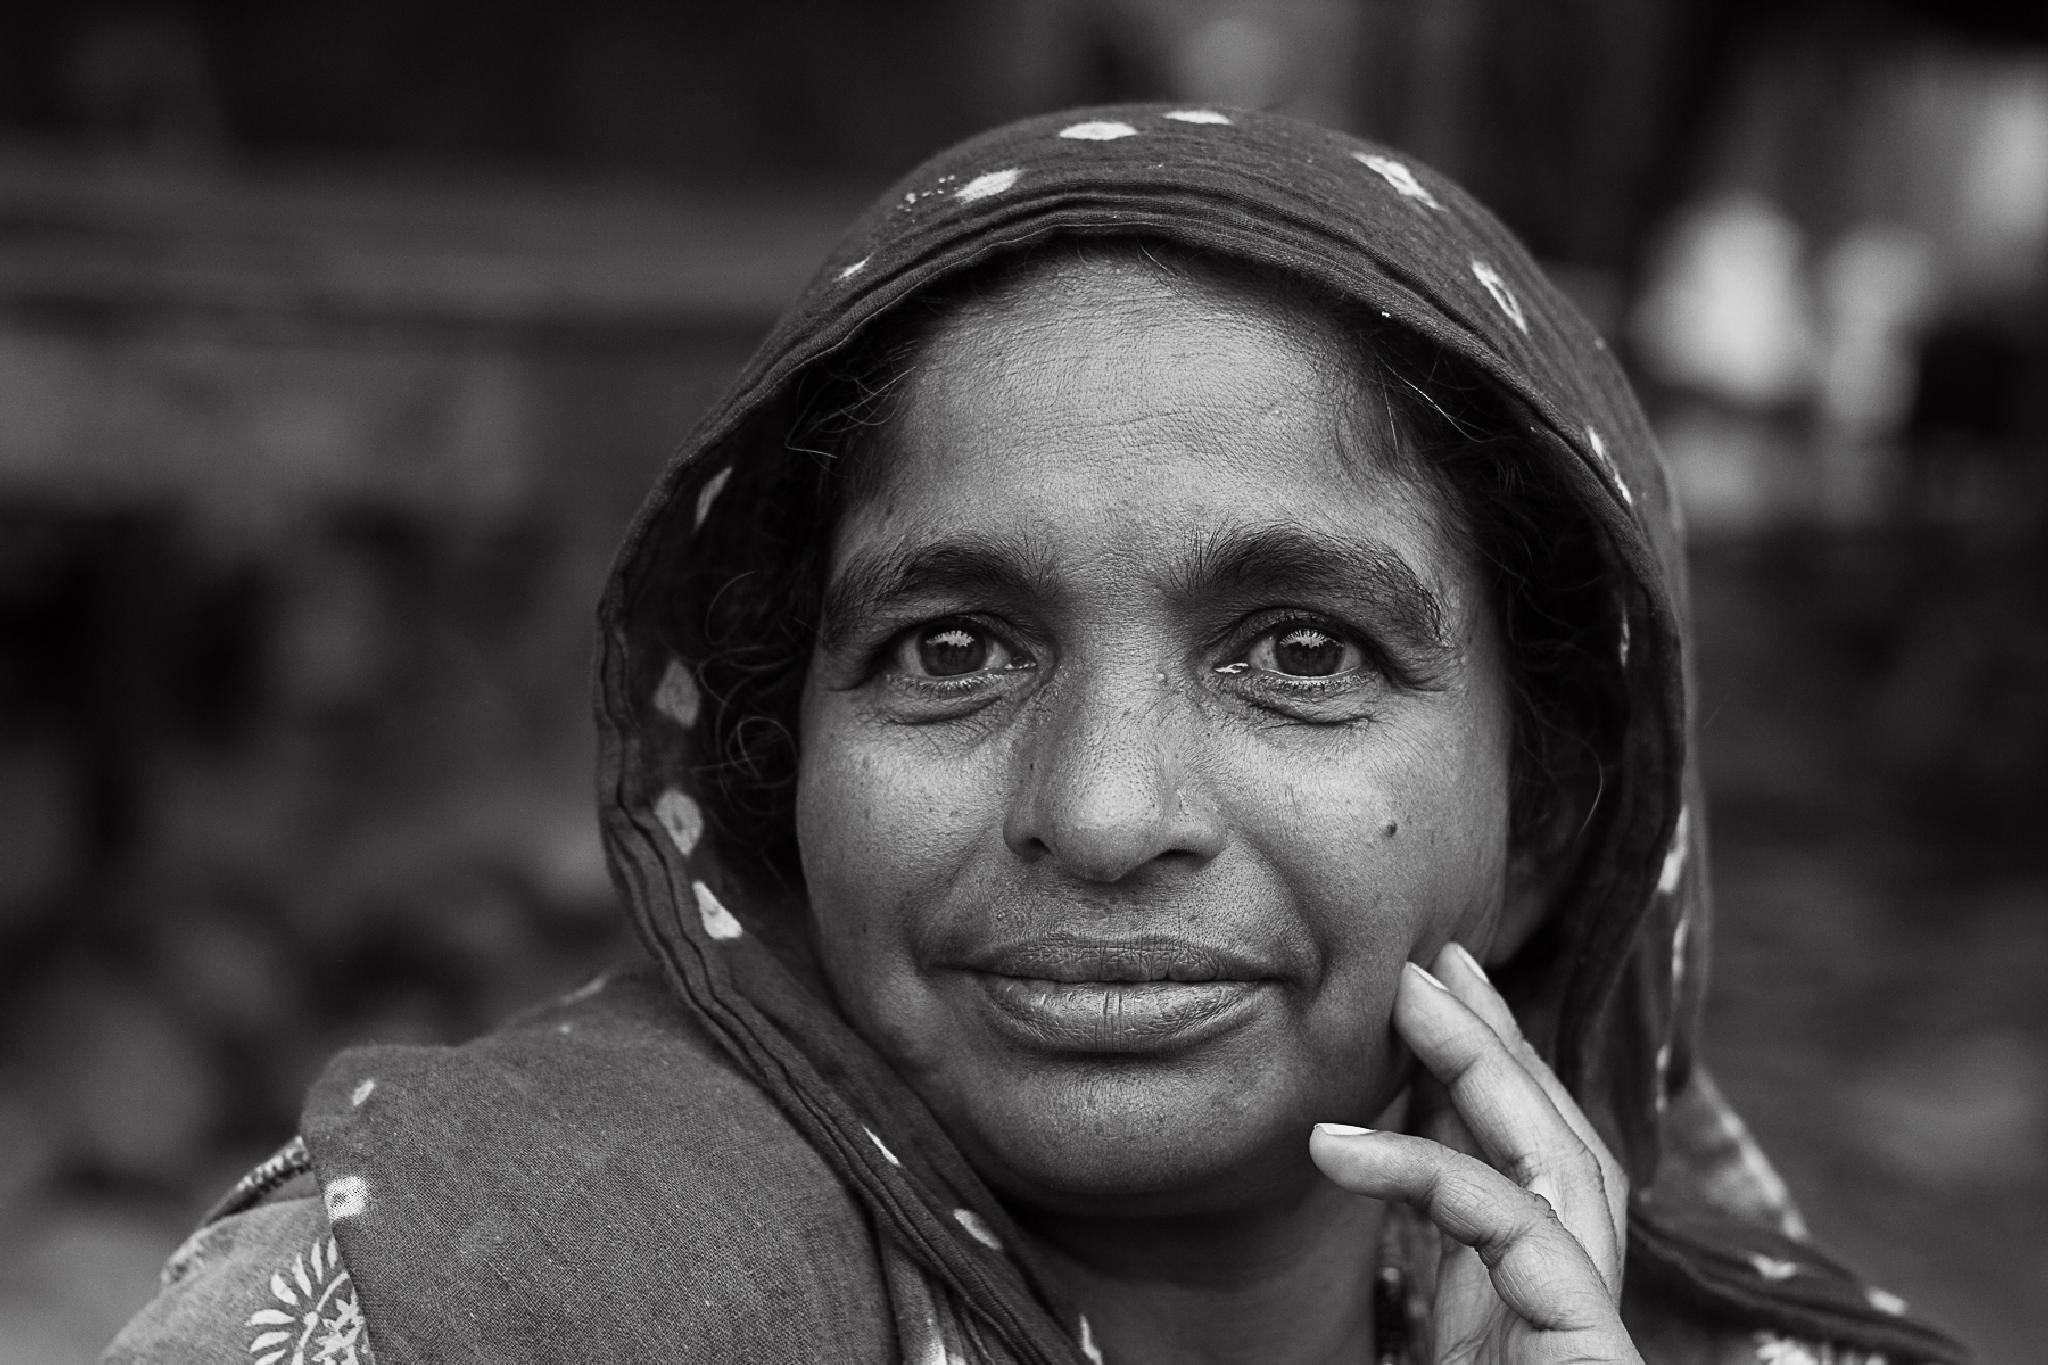 Beauty from Rural India by Indresh Gupta